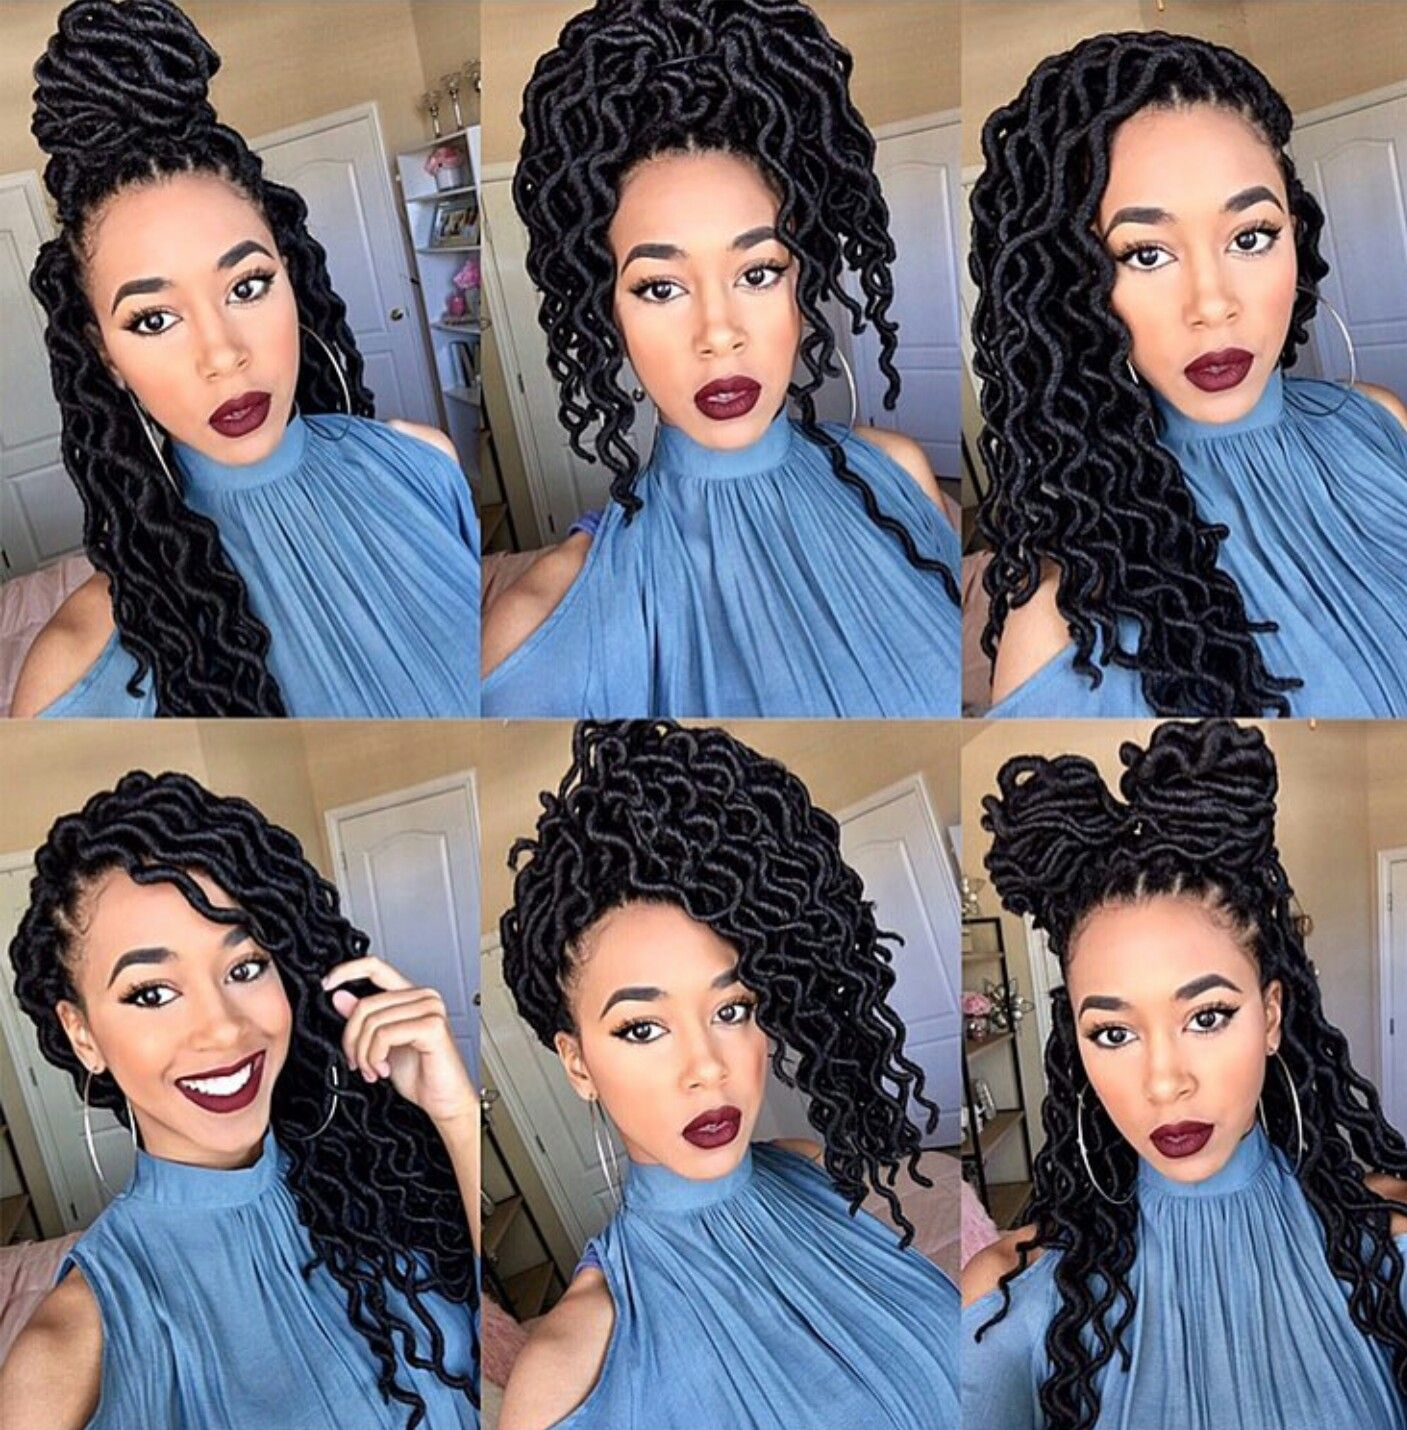 Faux Locs Hairstyles Adorable Faux Locs Faux Curly Locs  Hair Pinterest  Faux Locs Locs And